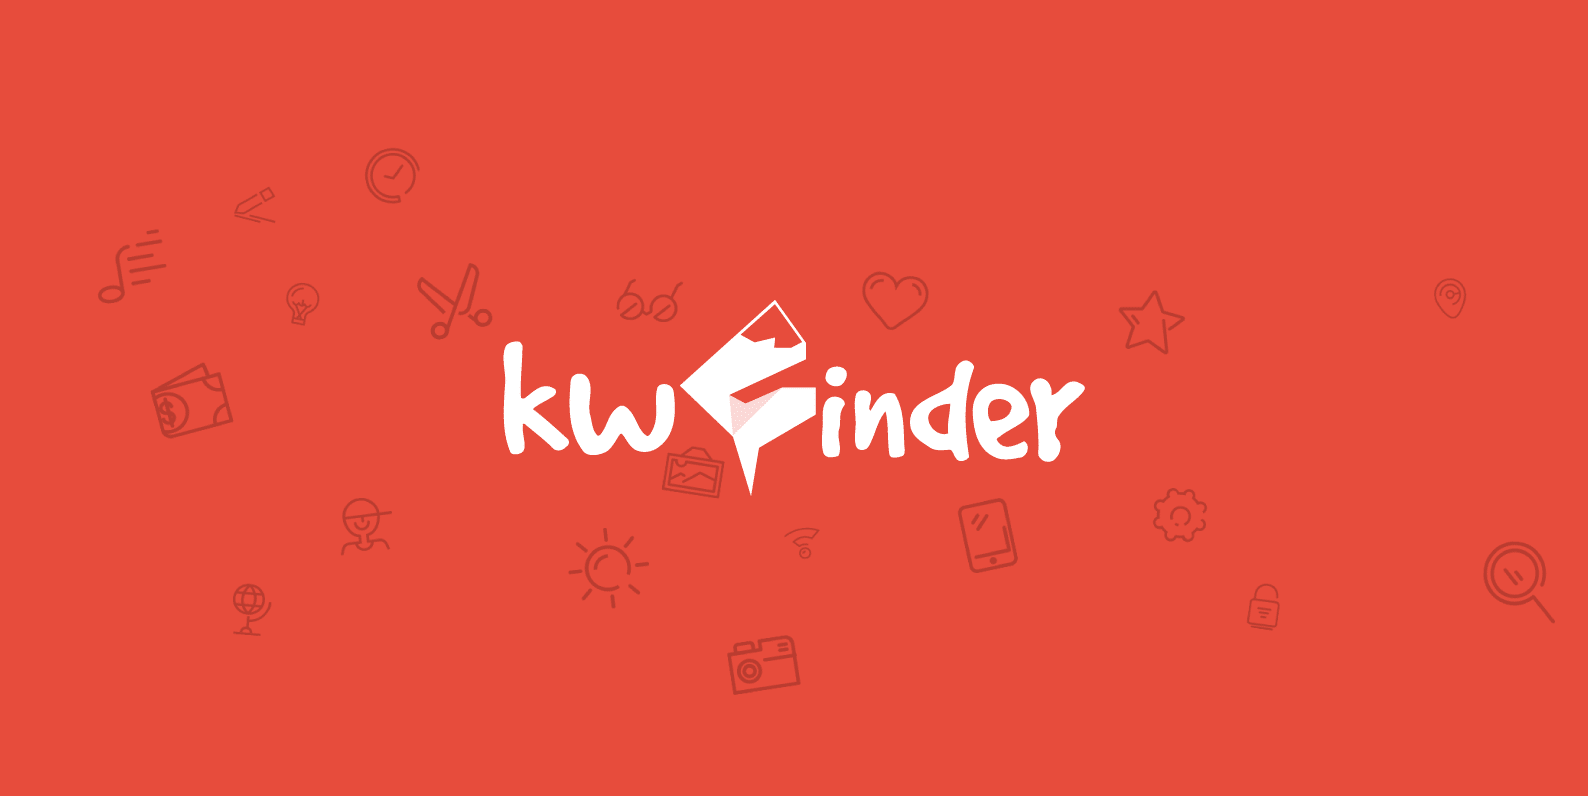 keysearch review kwfinder